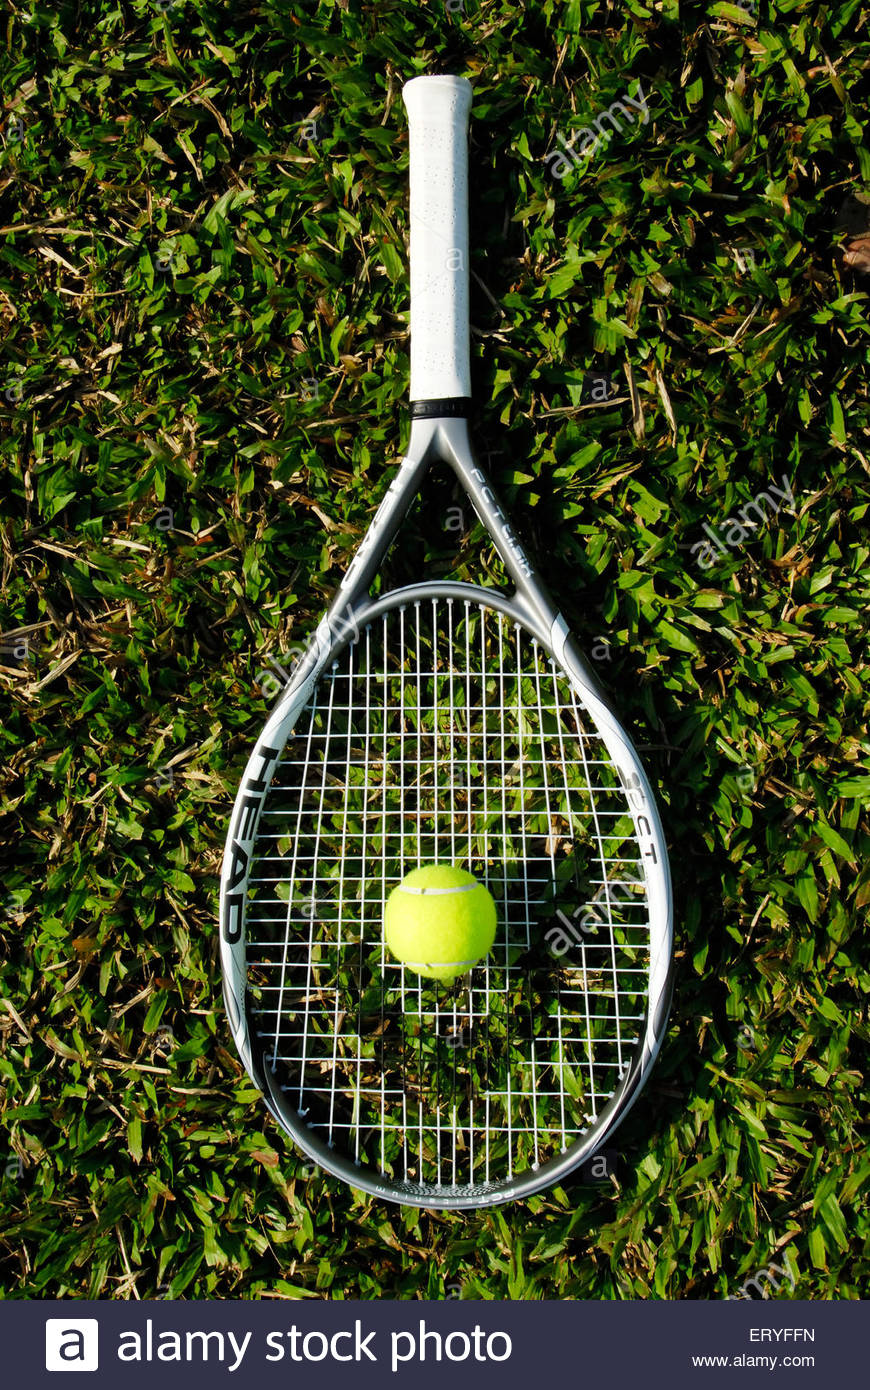 Tennis racquet with ball lying on lush green grass 2009 - Stock Image